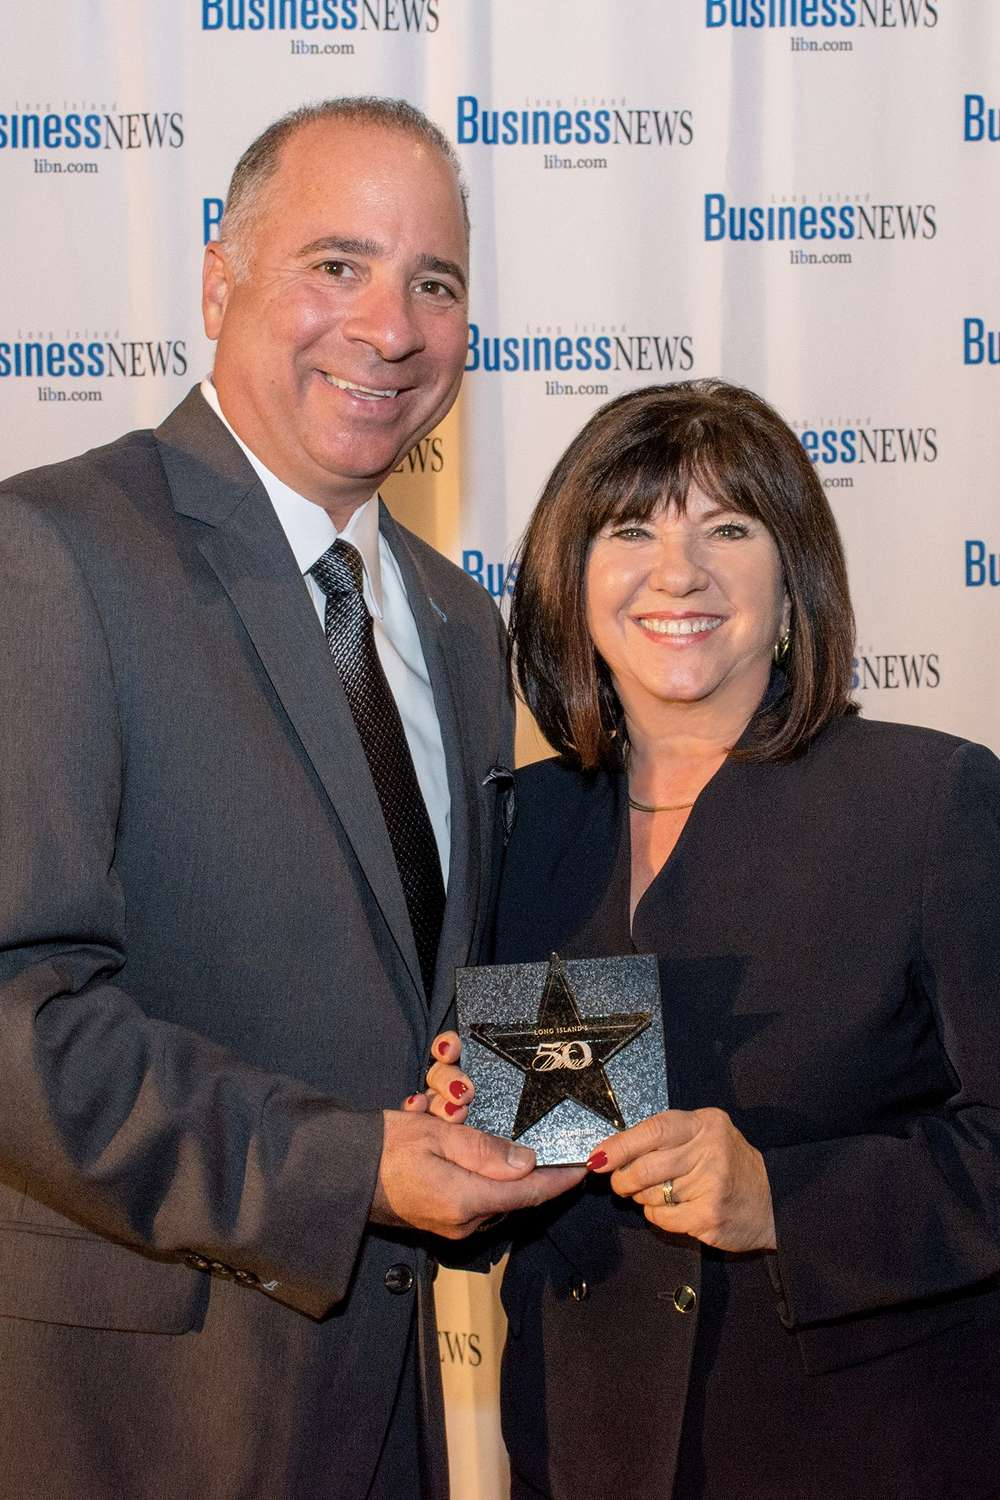 Lina Gottesman, president and owner of Altus Metal, Marble and Wood, was named one of Long Island's Top 50 Women.